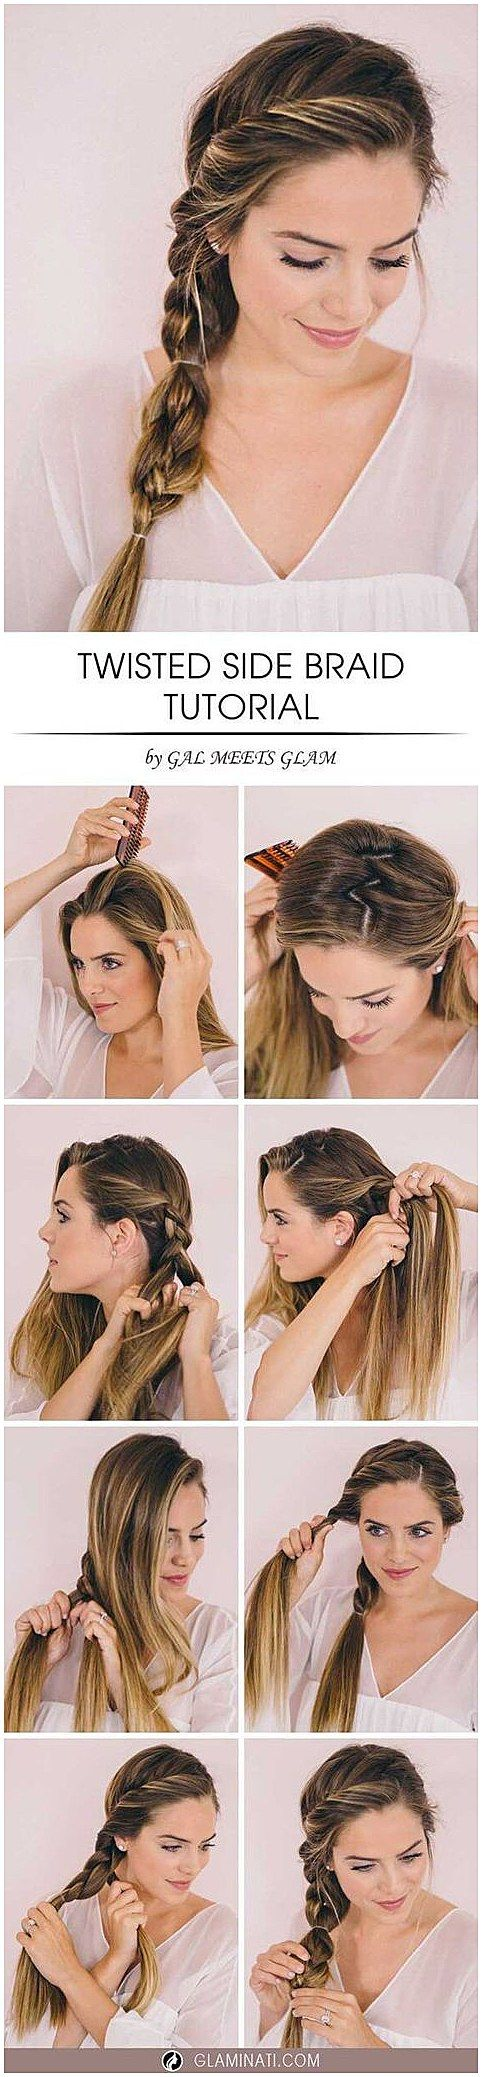 most popular step by step hairstyle tutorials